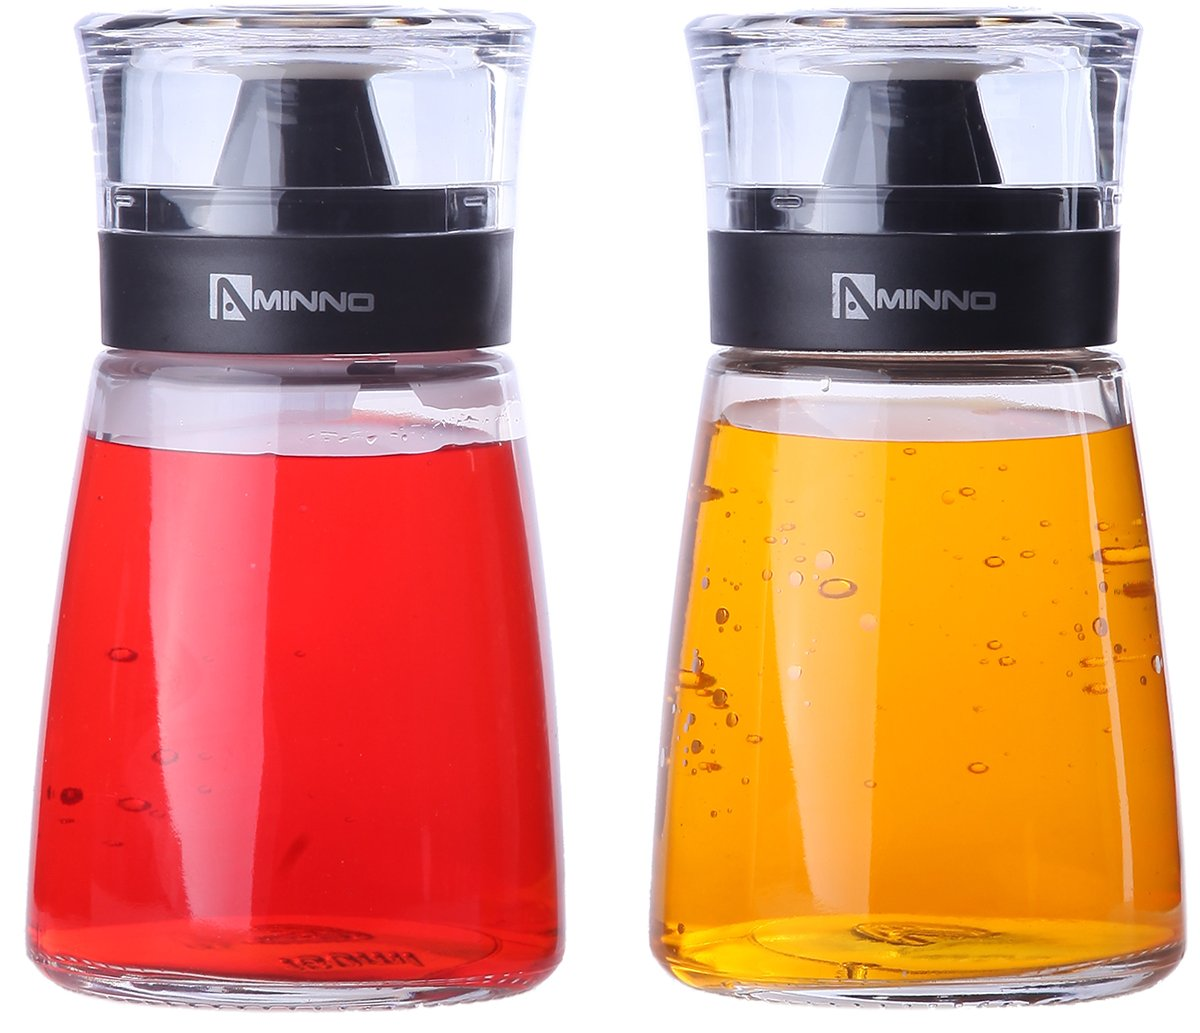 5.5oz Oil and Vinegar Cruets - Glass Dispensers for Oil and Vinegar with Sealing Caps - 2 Pc Set